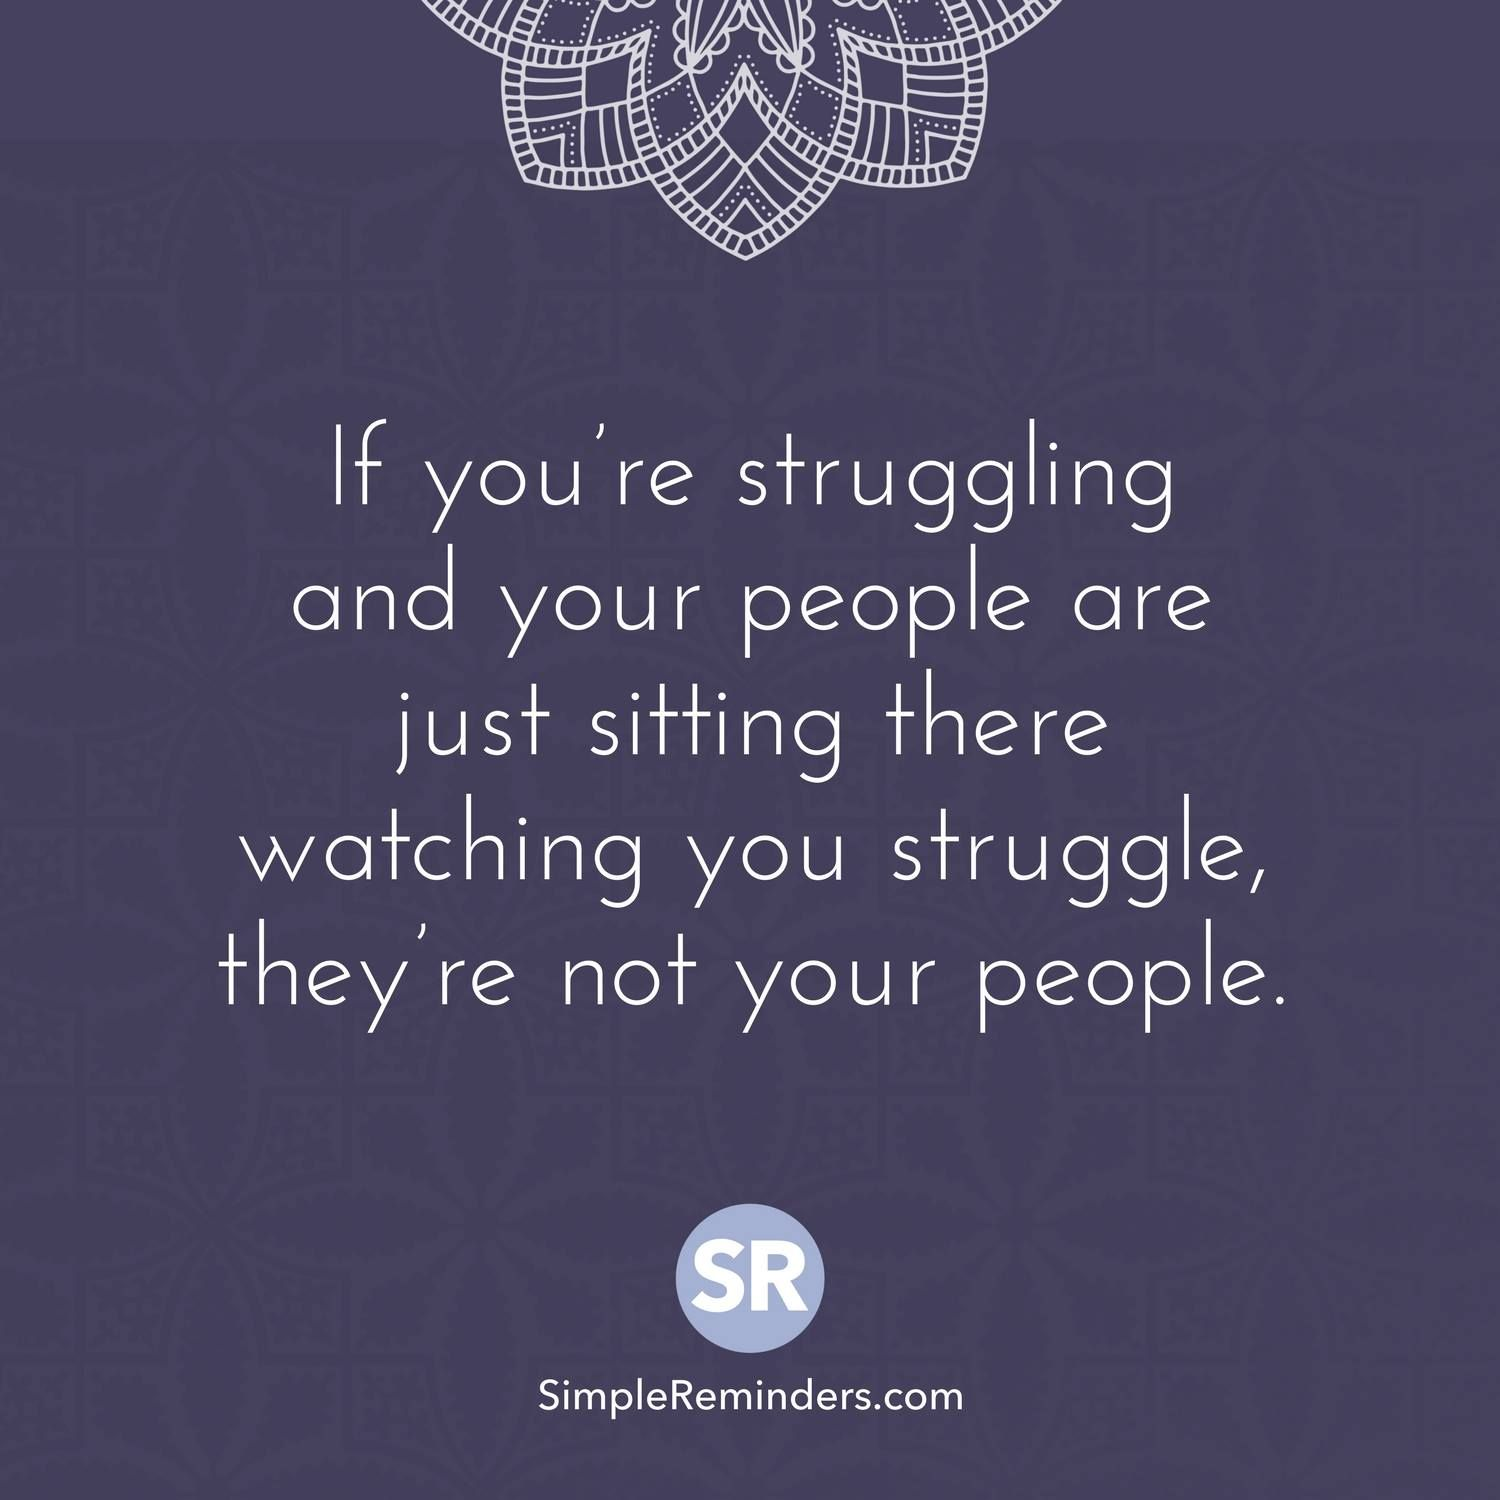 Quotes About Life Struggles If You're Struggling And Your People Are Just Sitting There